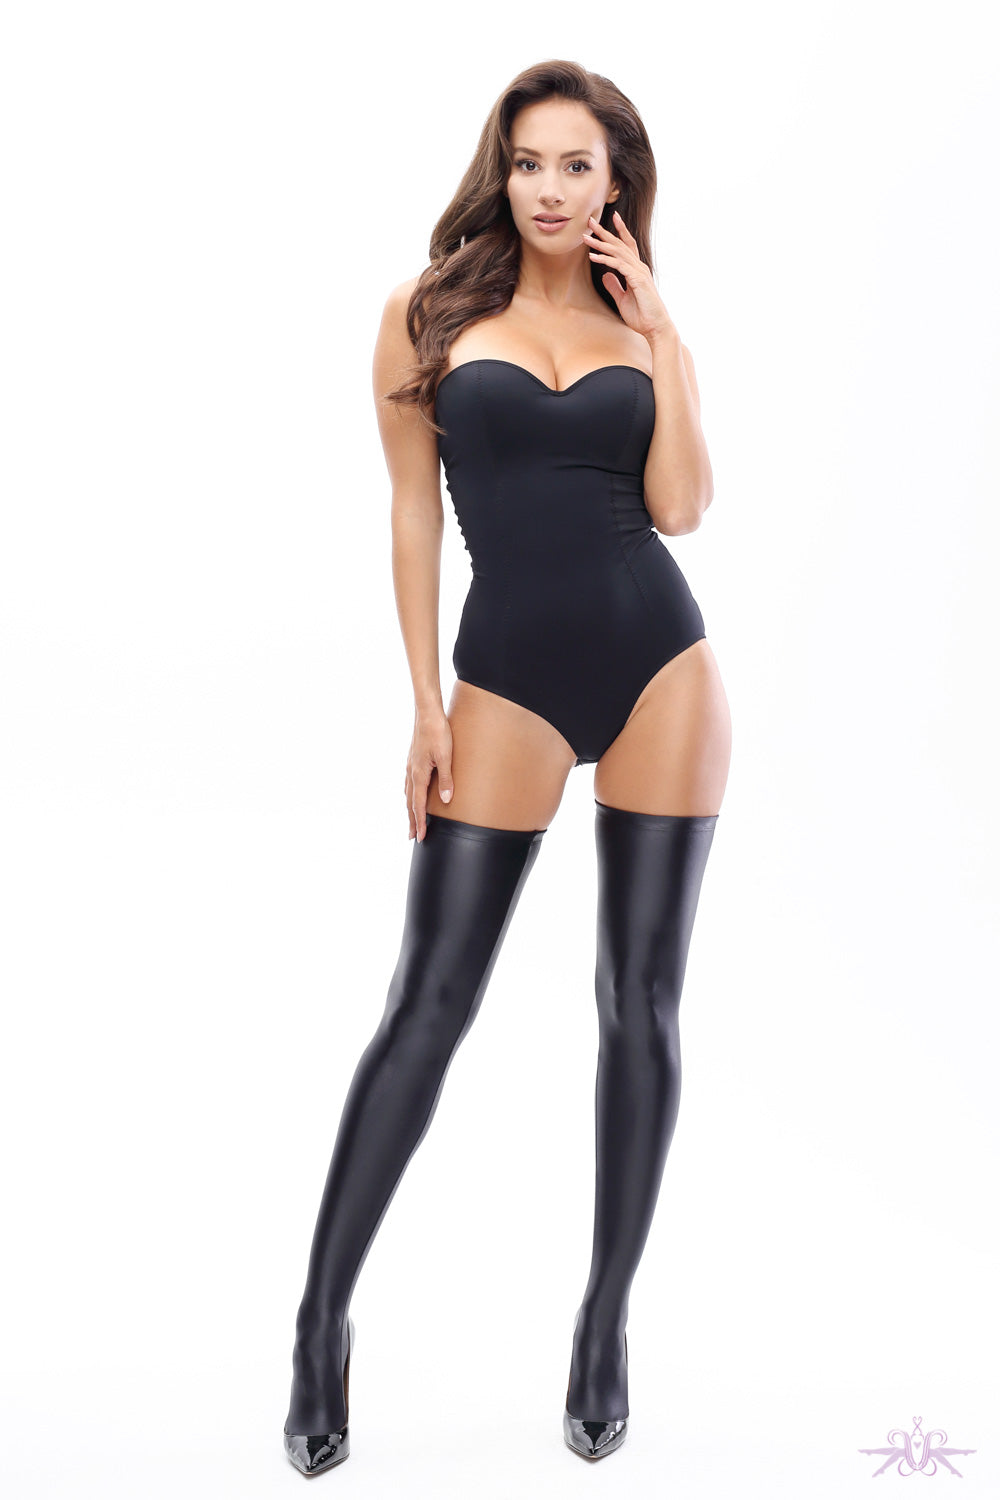 MissO Glossy Opaque Hold Ups - Mayfair Stockings